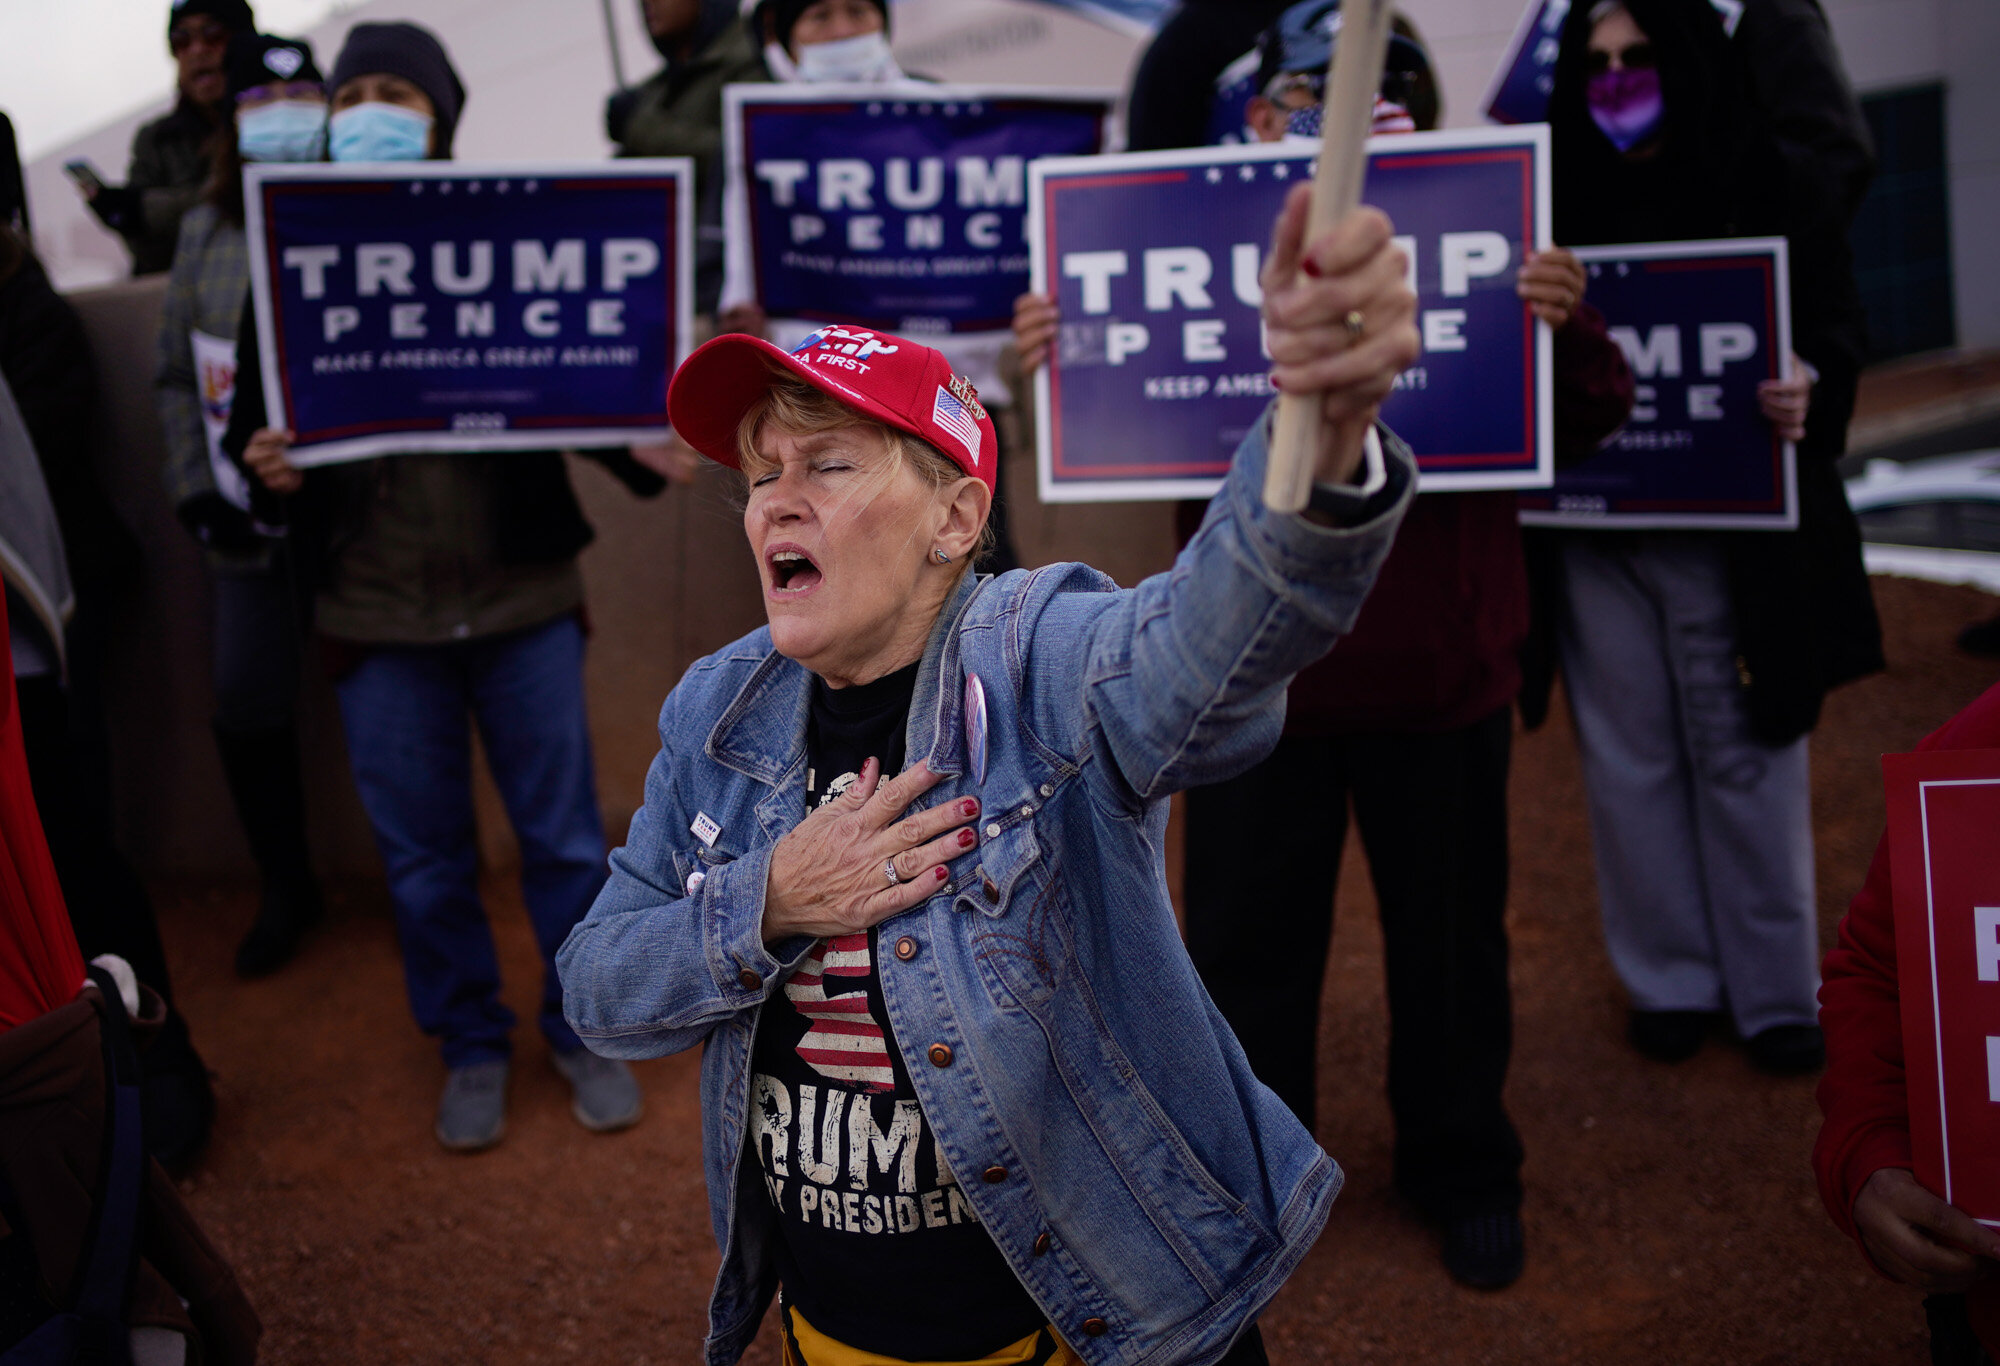 A supporter of President Donald Trump holds her hand over her heart during a protest of the election outside of the Clark County Election Department in North Las Vegas on Nov. 8, 2020. (AP Photo/John Locher)